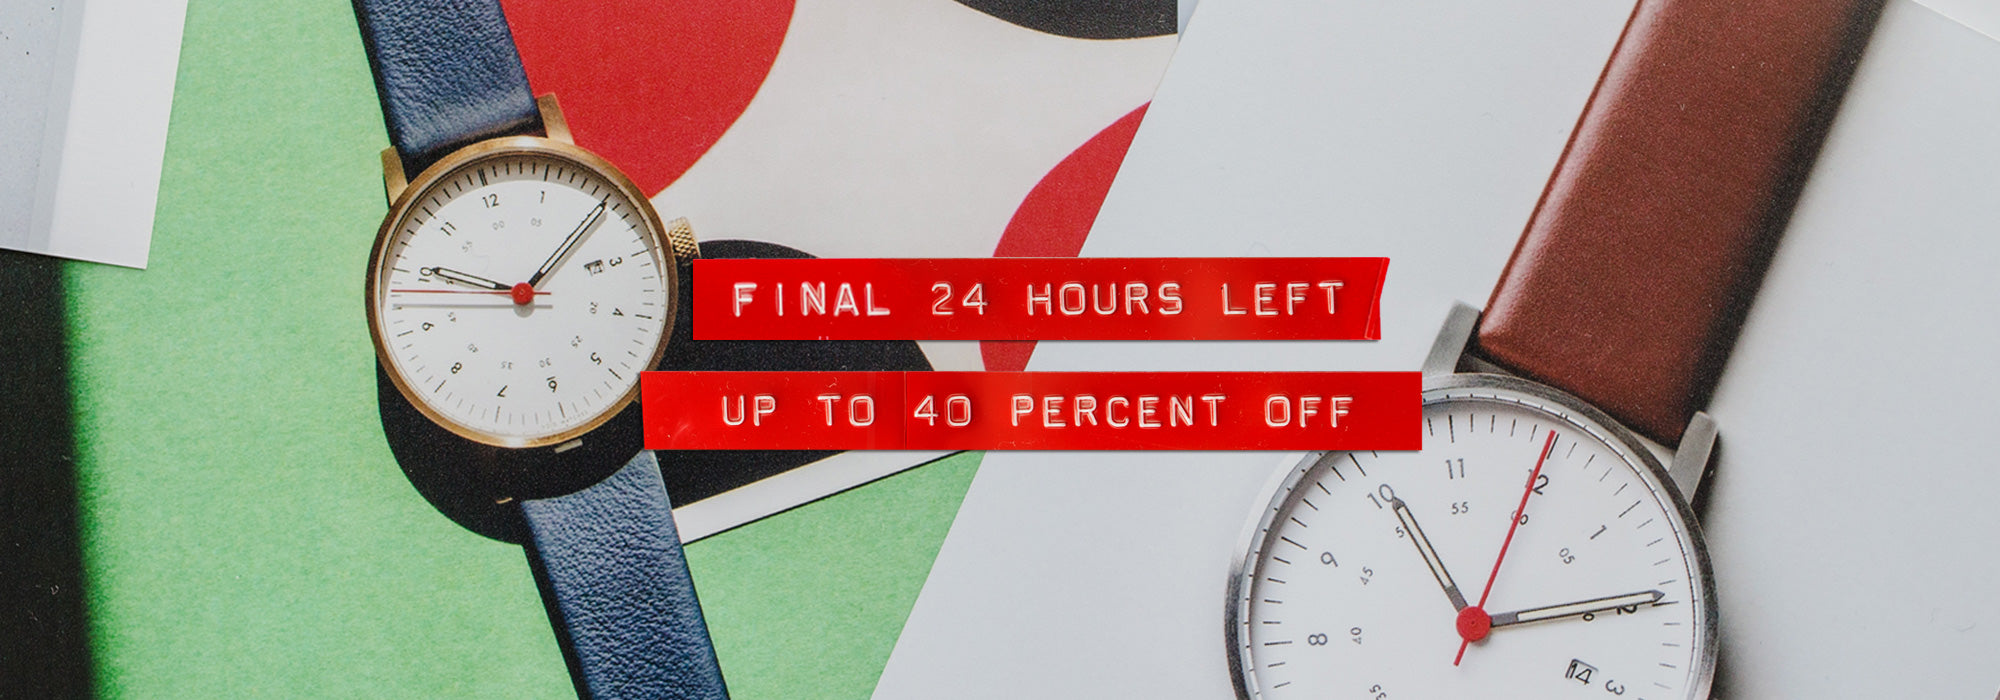 VOID Watches Black Friday Sale 24 Hour Left